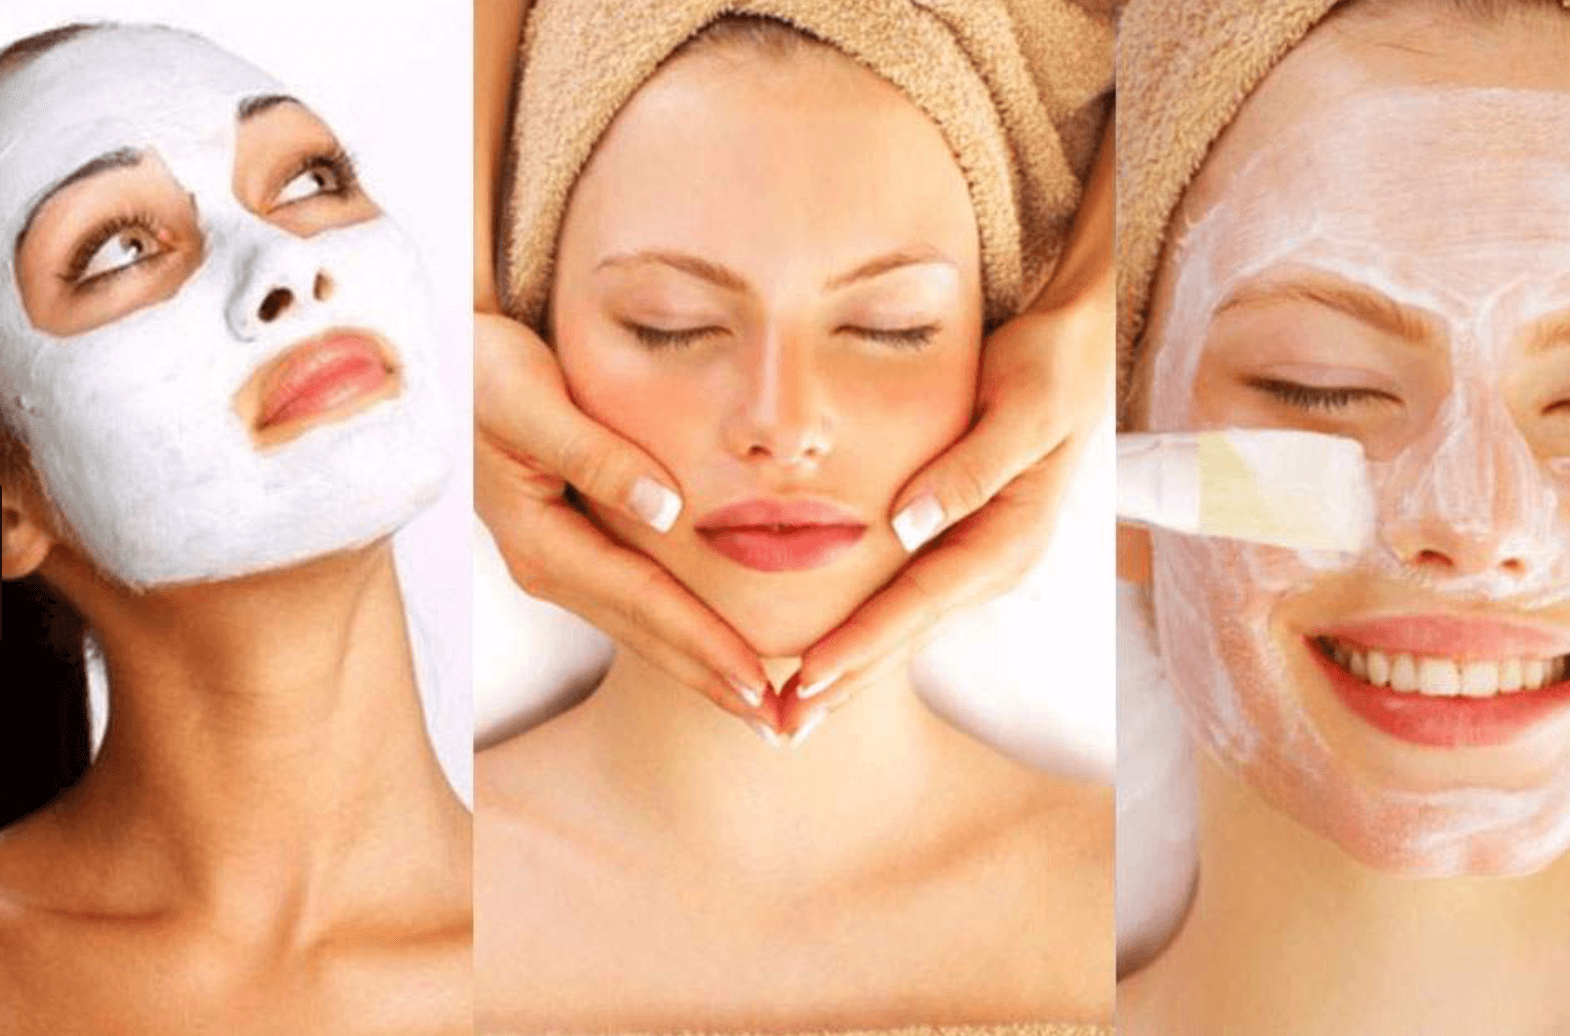 Facial and skincare, big butt woman that nude